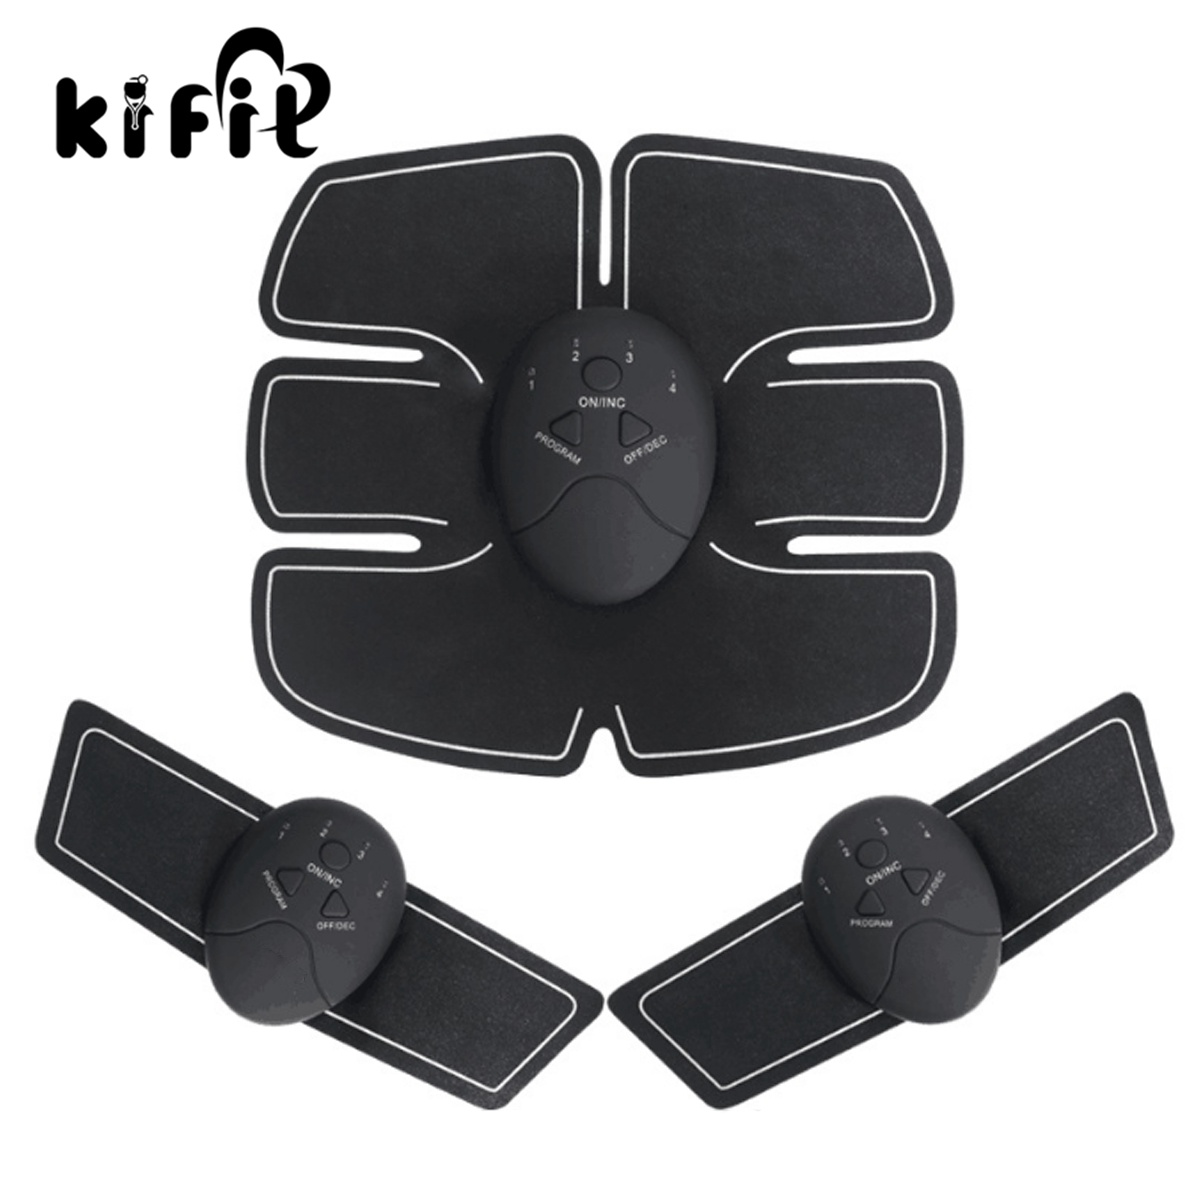 Kifit Electrical Muscle Training Gear Body Fitness Abdomen / Arm Exercise Healthy Care Electric Weight Loss Slimming Massager hot healthy household bicycle super mute younger dynamic magnetic bike fitness equipment pedal bicycle exercise to lose weight